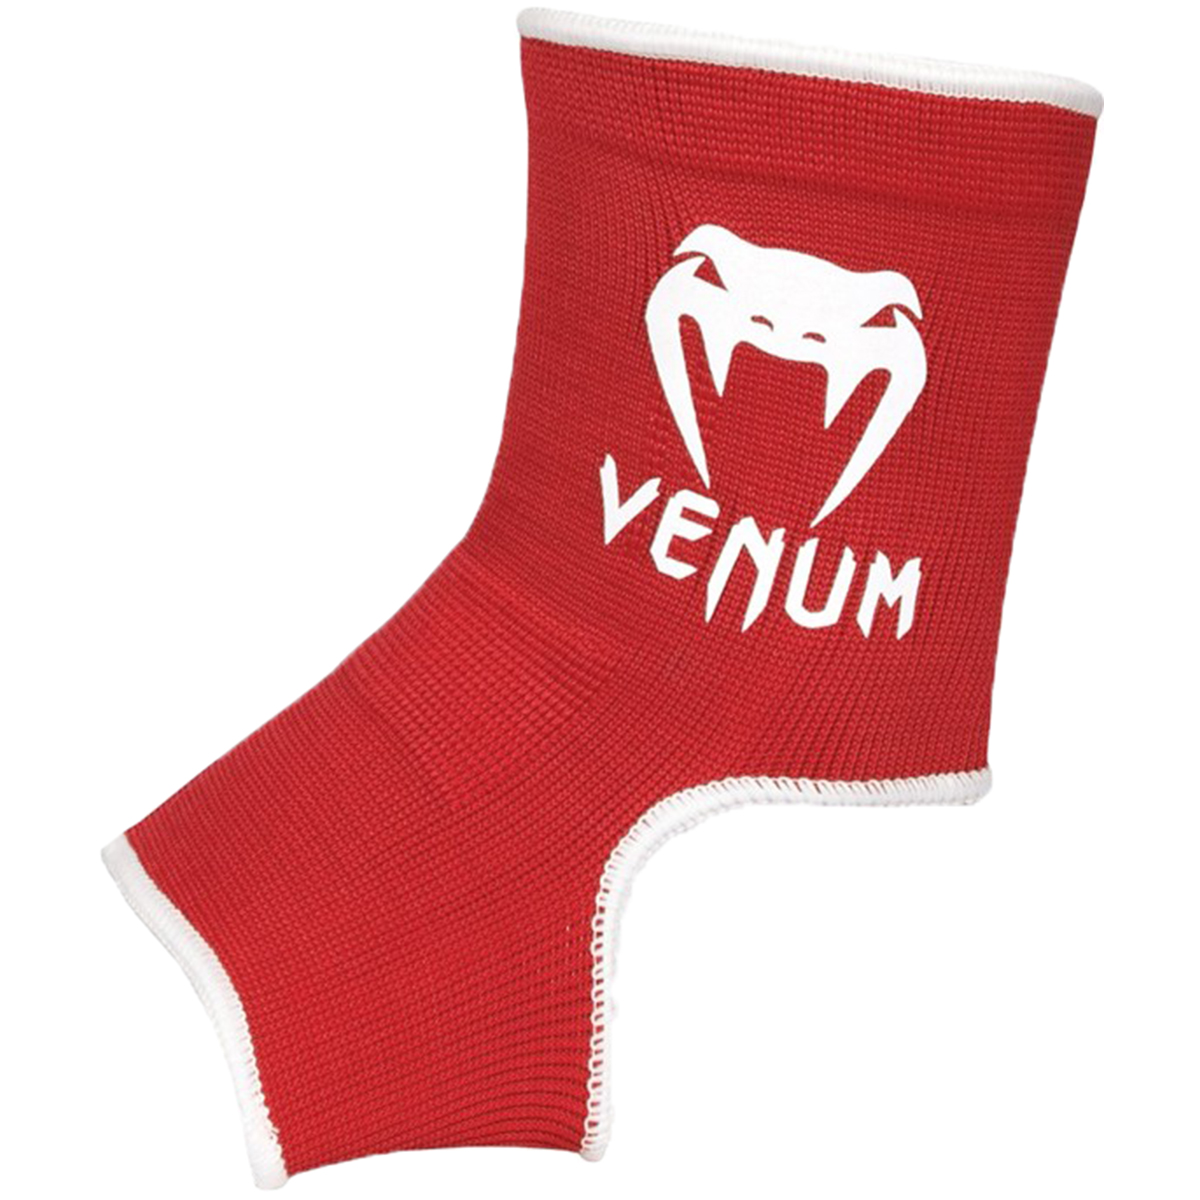 thumbnail 25 - Venum Kontact Slip-On MMA Pro Ankle Support Guards